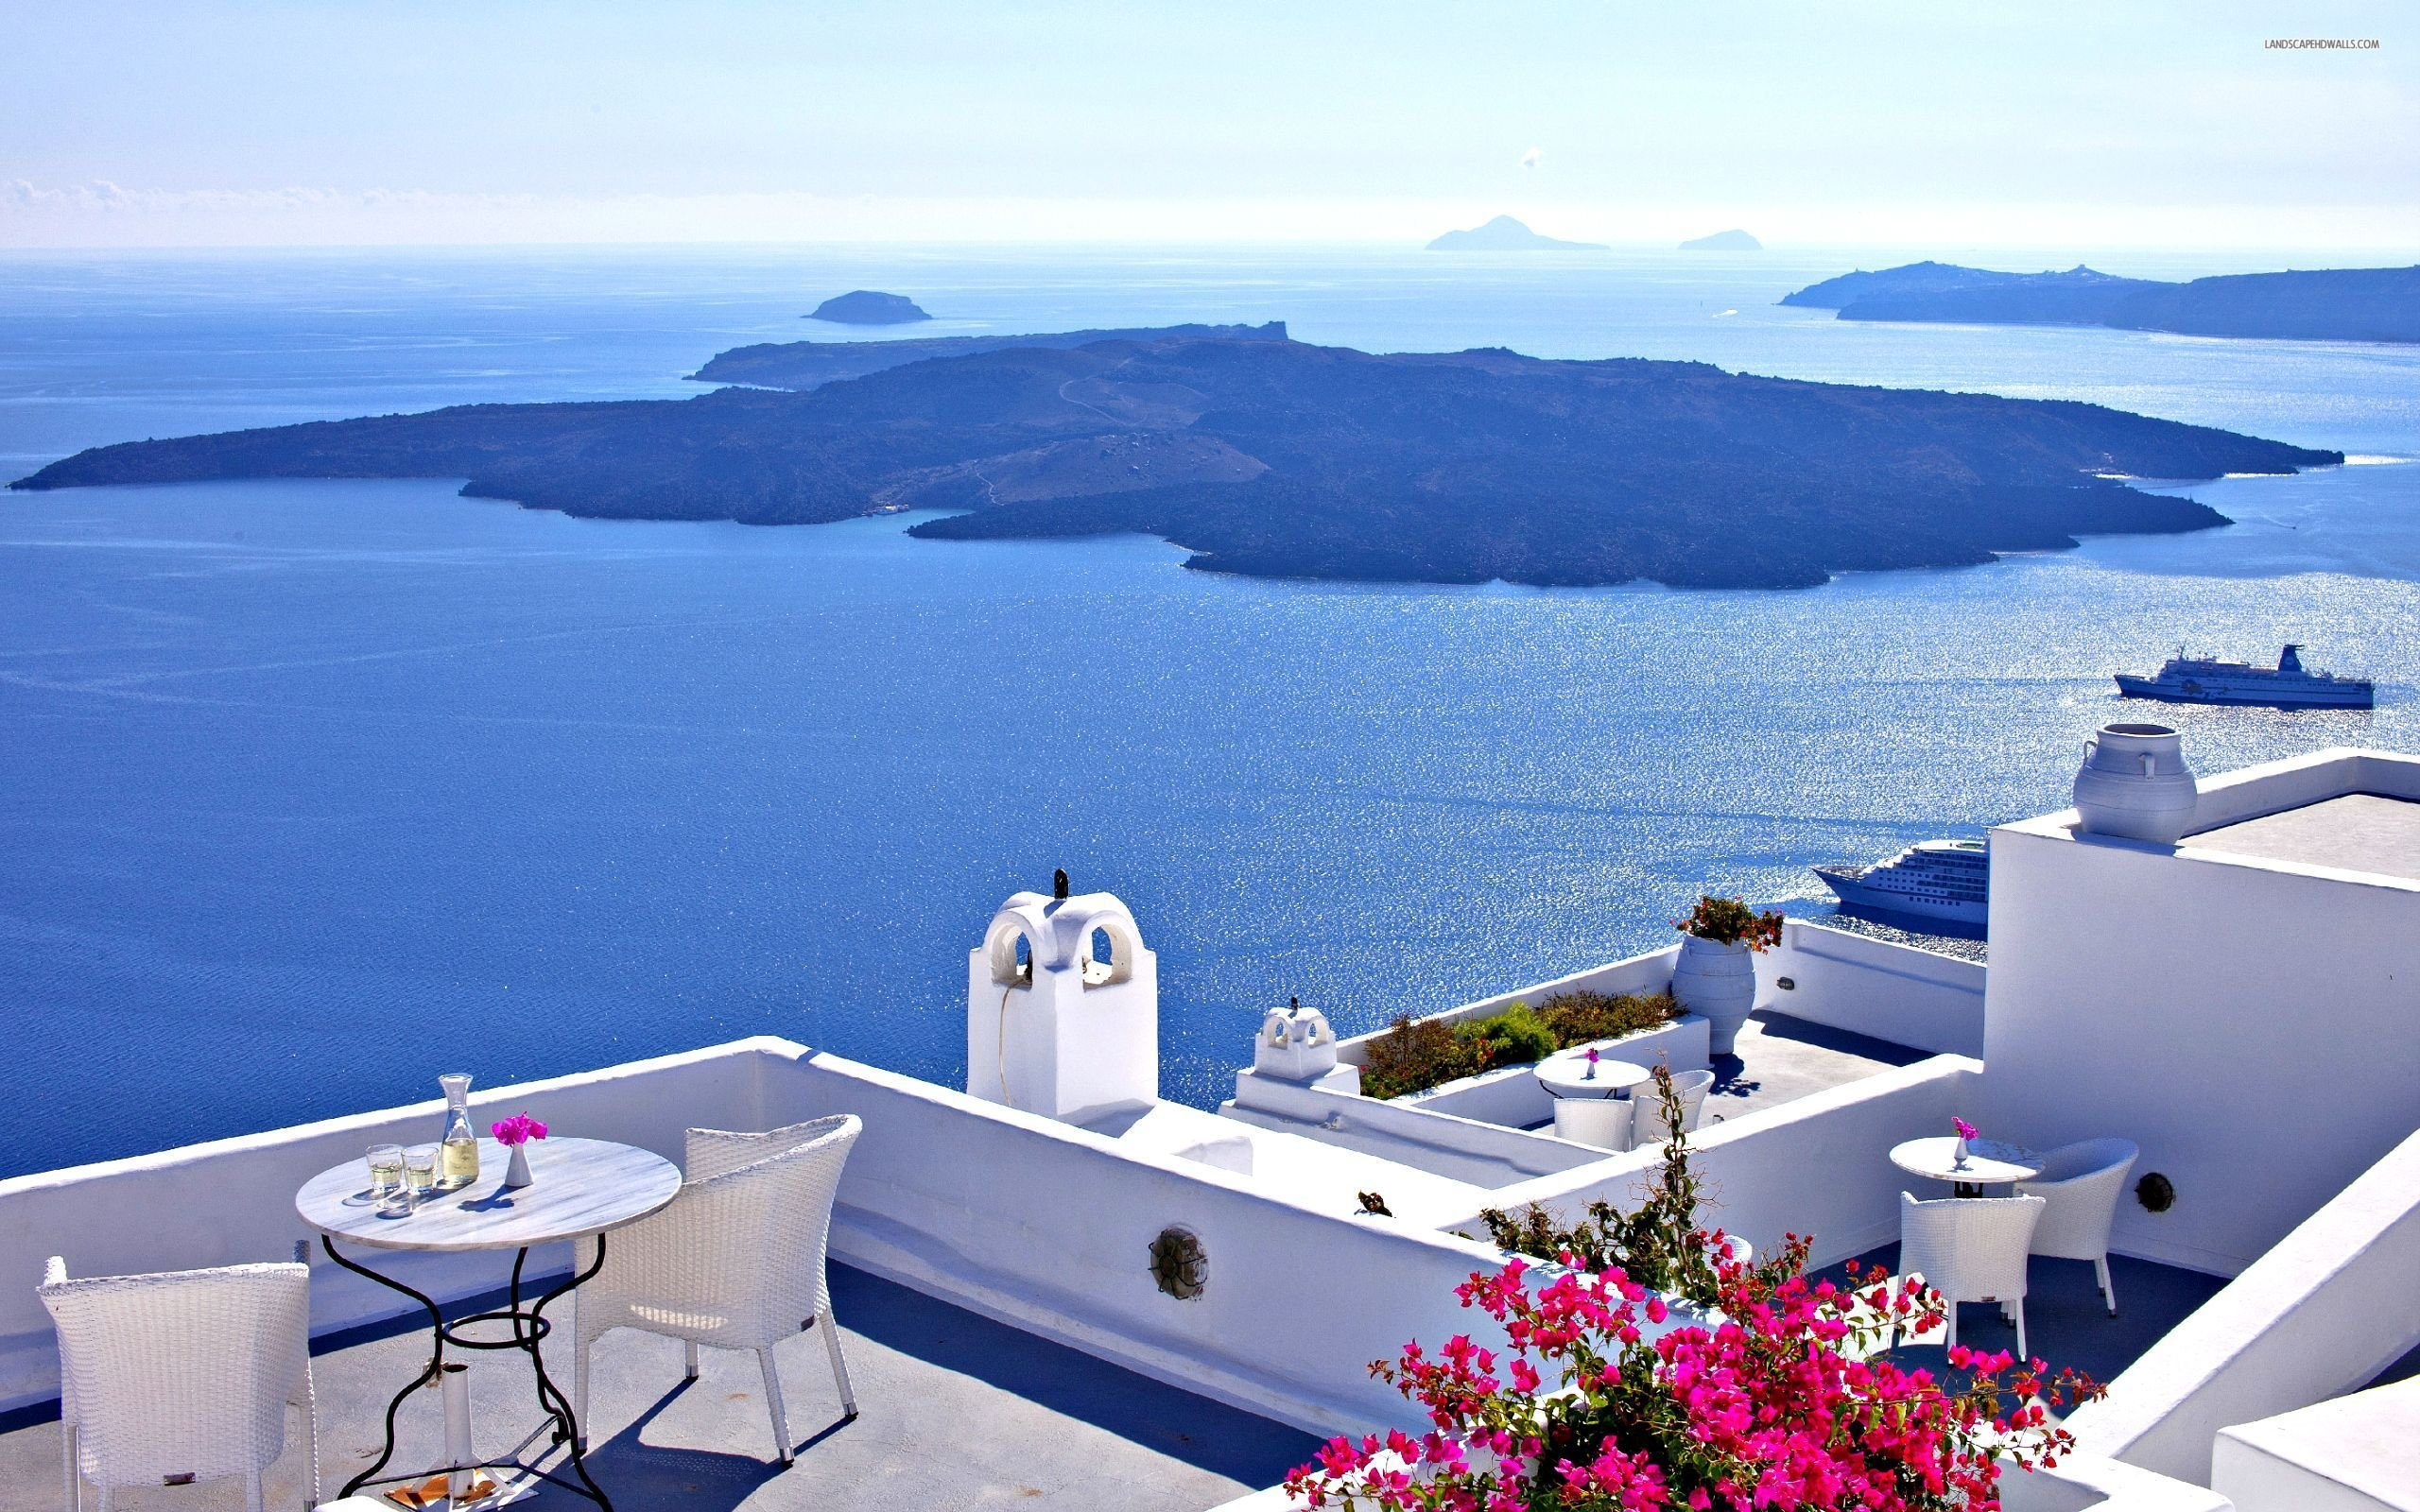 New Santorini Images GsFDcY HD Wallpapers 2560x1600